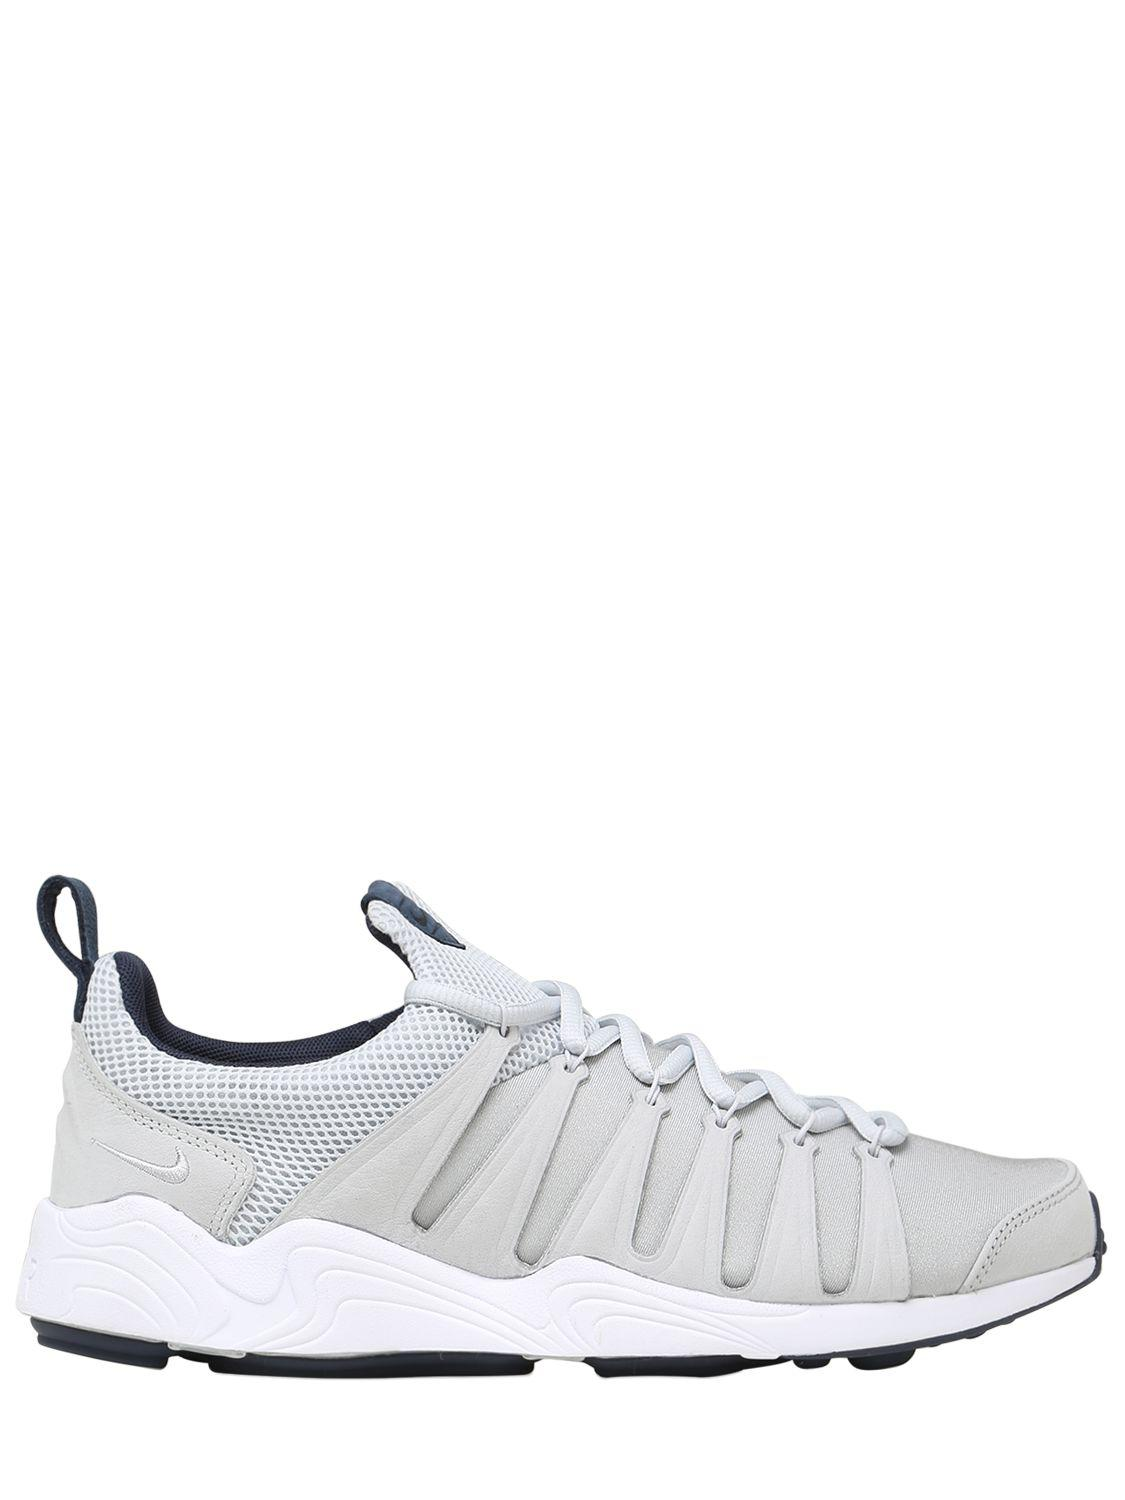 fc3e1dfab546 Nike Lab Air Zoom Spirimic Sneakers in White for Men - Lyst